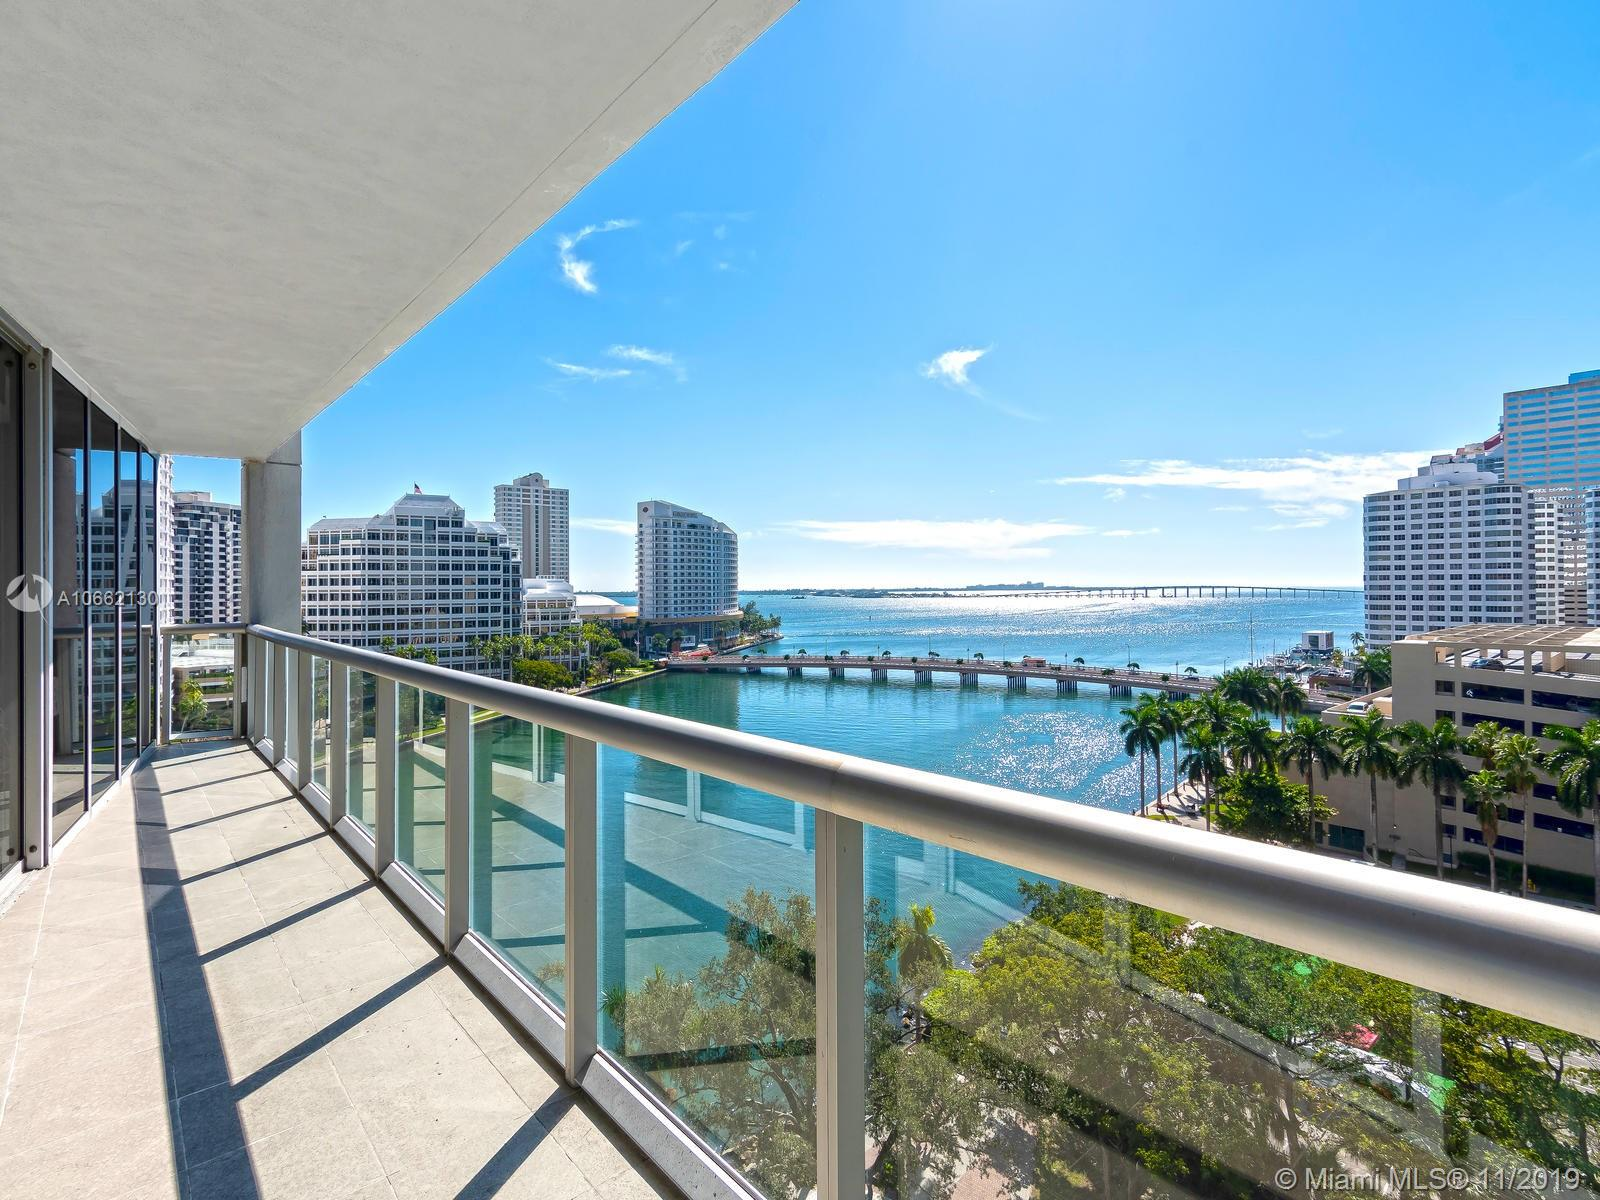 Icon Brickell 2 #1001 - 495 Brickell Ave #1001, Miami, FL 33131